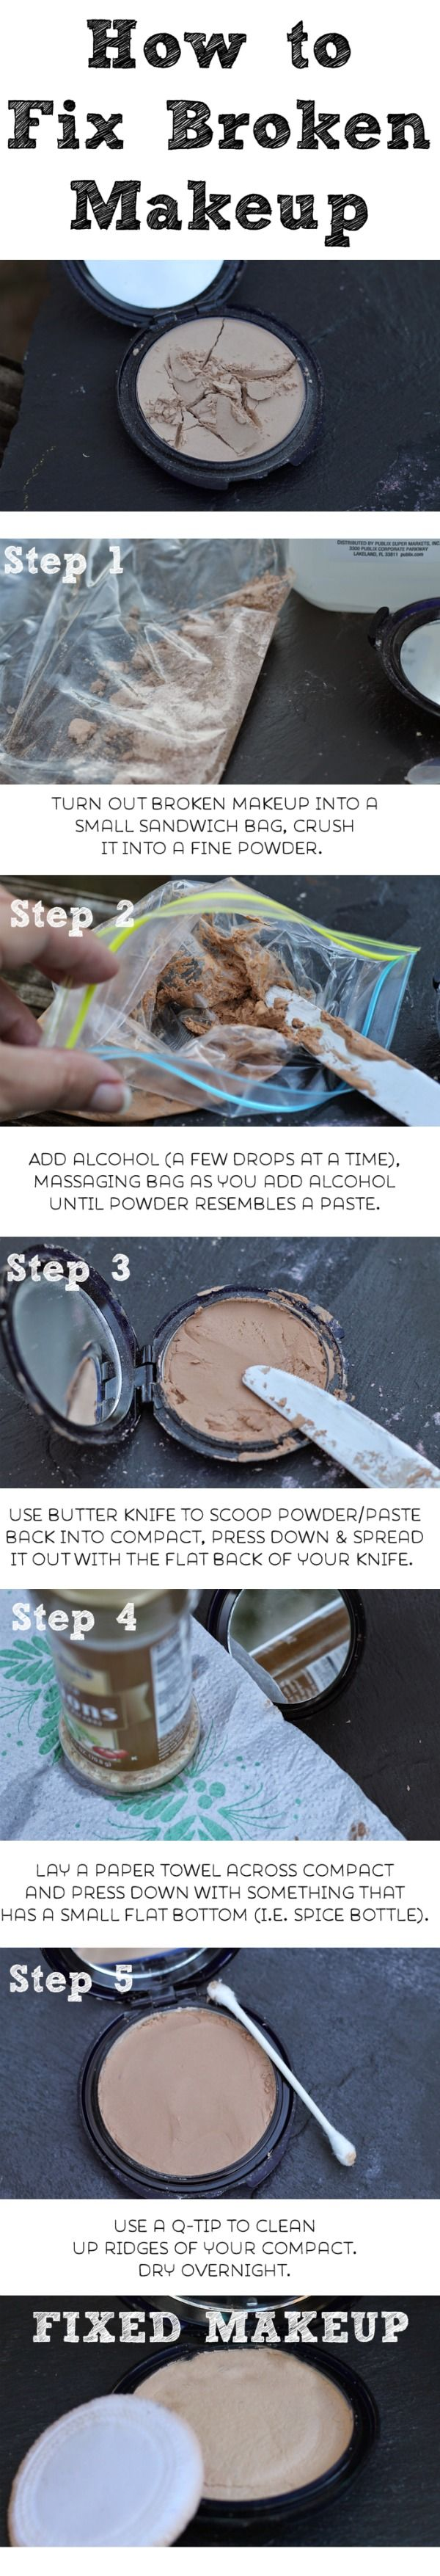 How to fix broken powder makeup with alcohol in four simple steps - 10 Homemade Recipes For Beauty Products How To Fix Broken Eyeshadow Blush Or Foundation